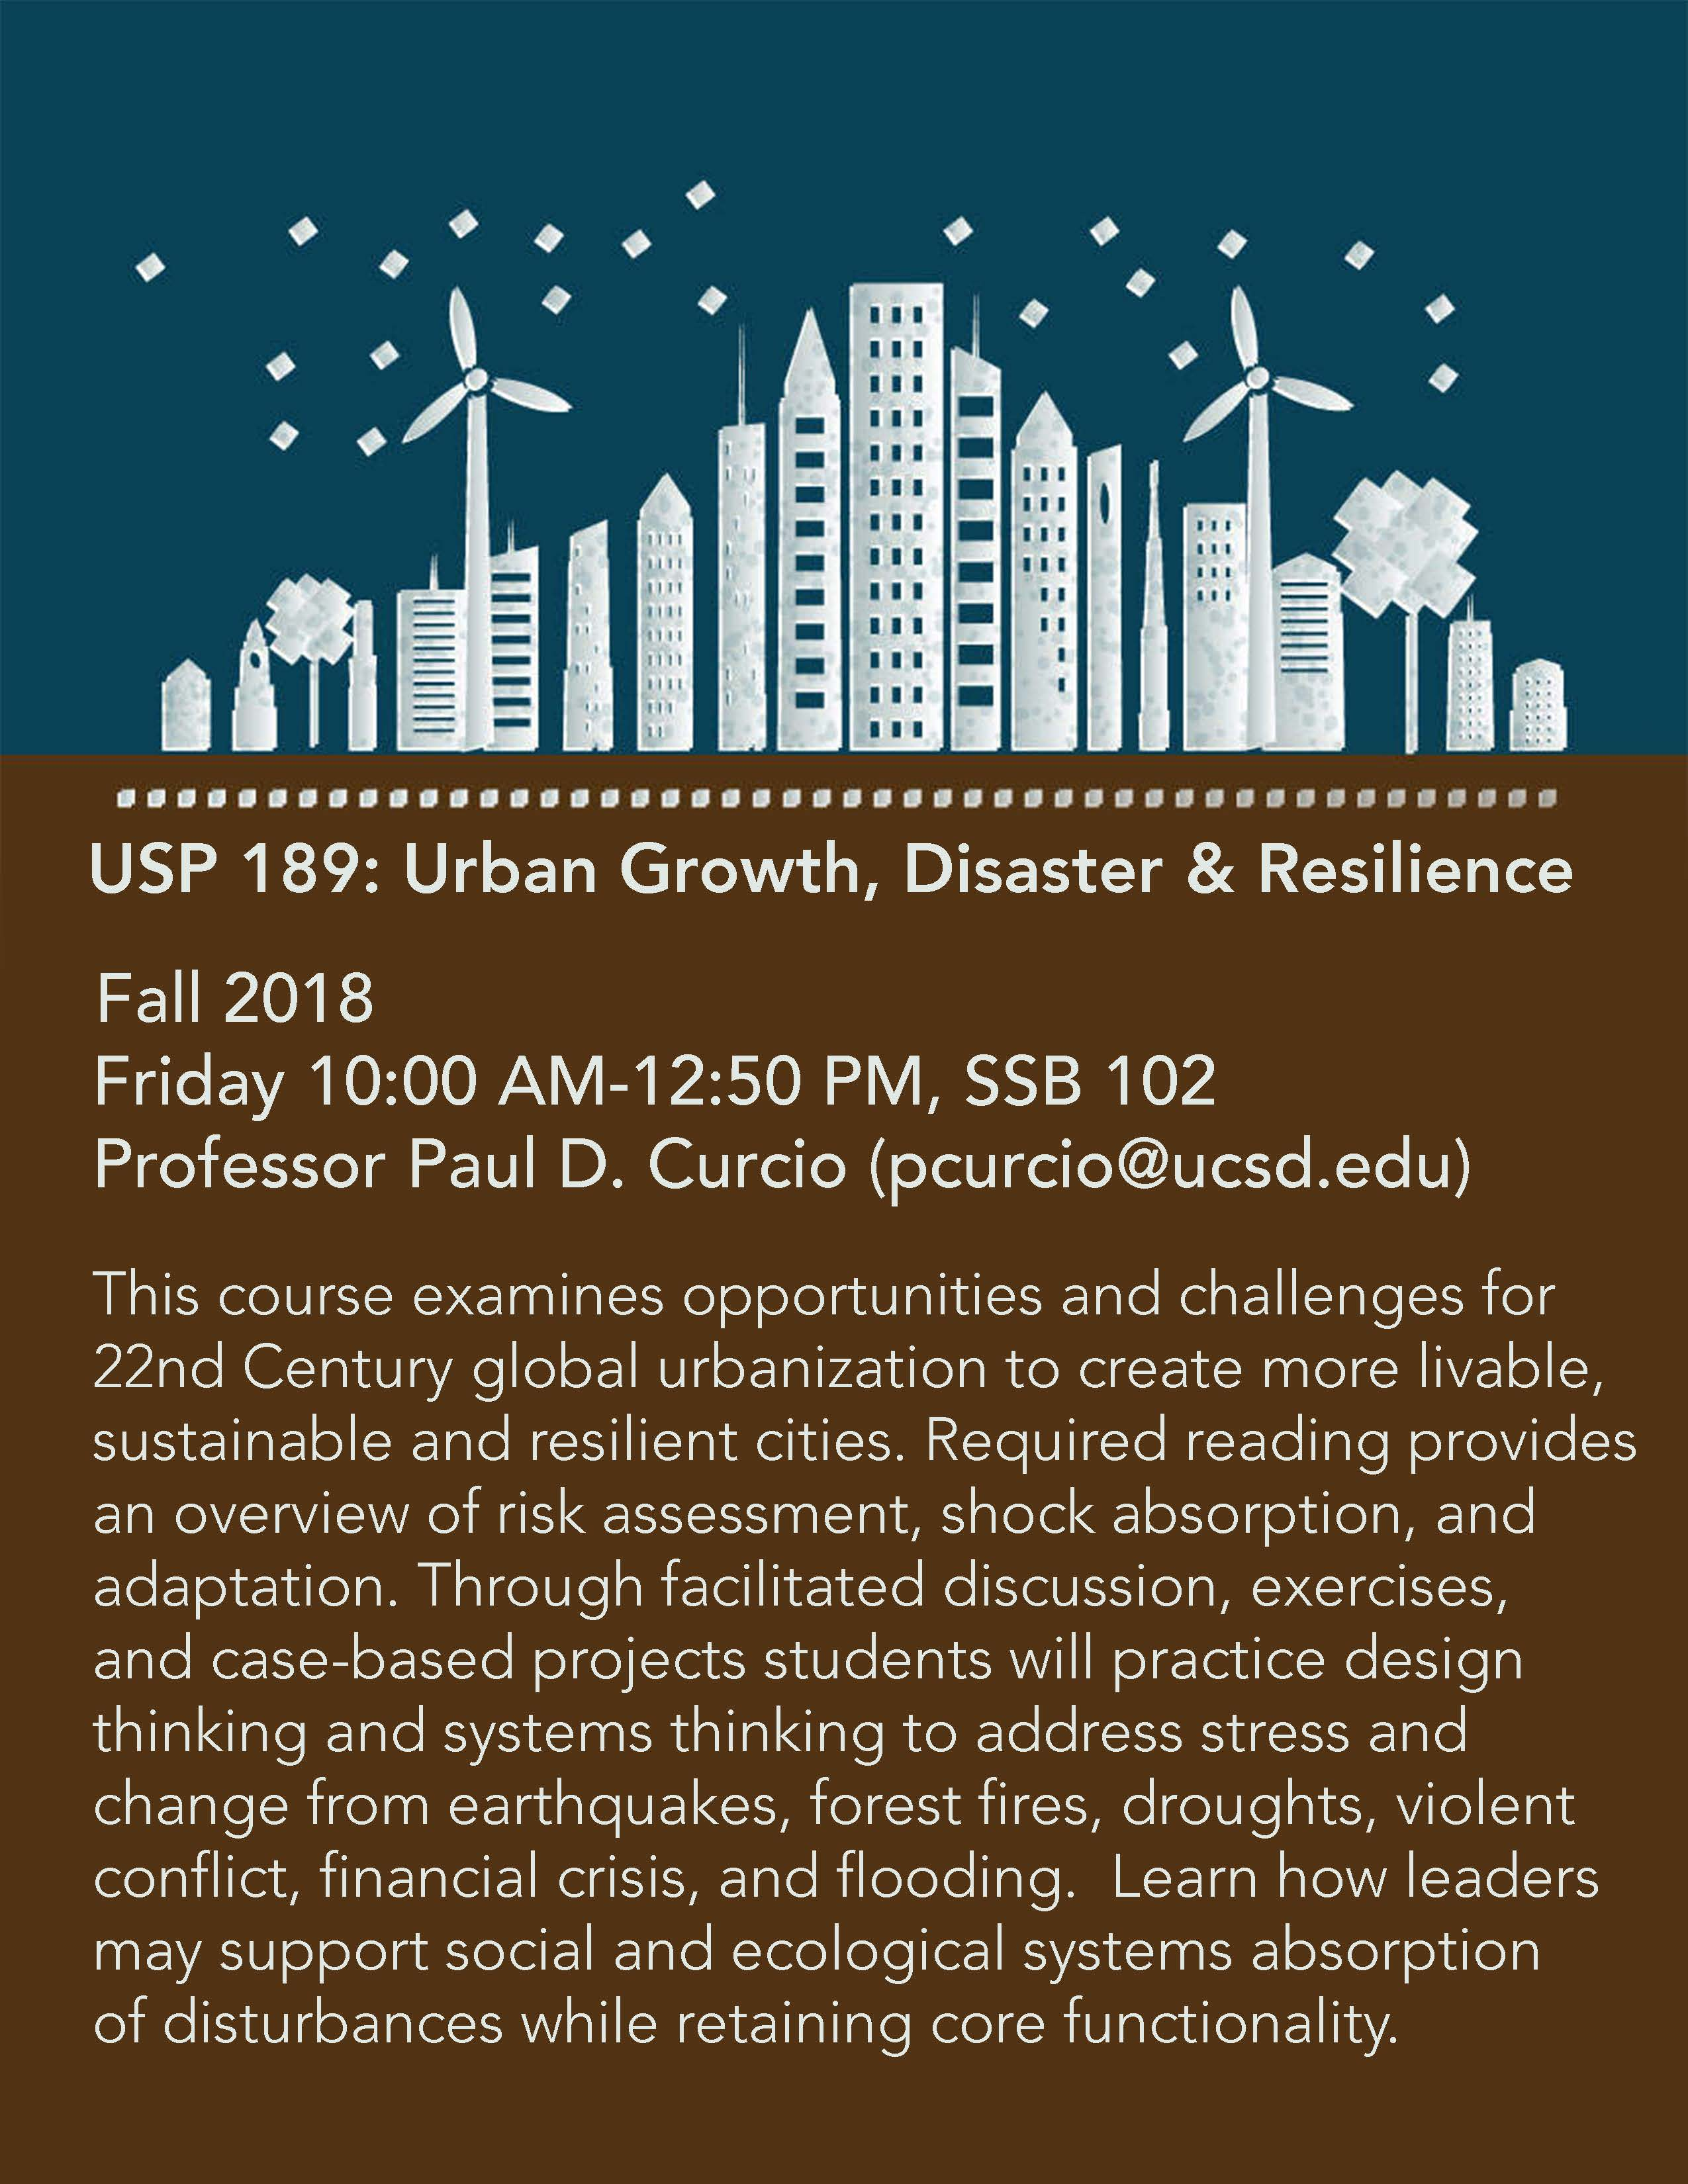 This course examines opportunities and challenges for 22nd Century global urbanization to create more livable, sustainable and resilient cities. Required reading provides an overview of risk assessment, shock absorption, and adaptation.  Students through facilitated discussion, exercises, and case-based projects will practice design thinking and systems thinking to address stress and change from earthquakes, forest fires, droughts, violent conflict, financial crisis, and flooding.  Learn how leaders may support social and ecological systems absorption of disturbances while retaining core functionality.